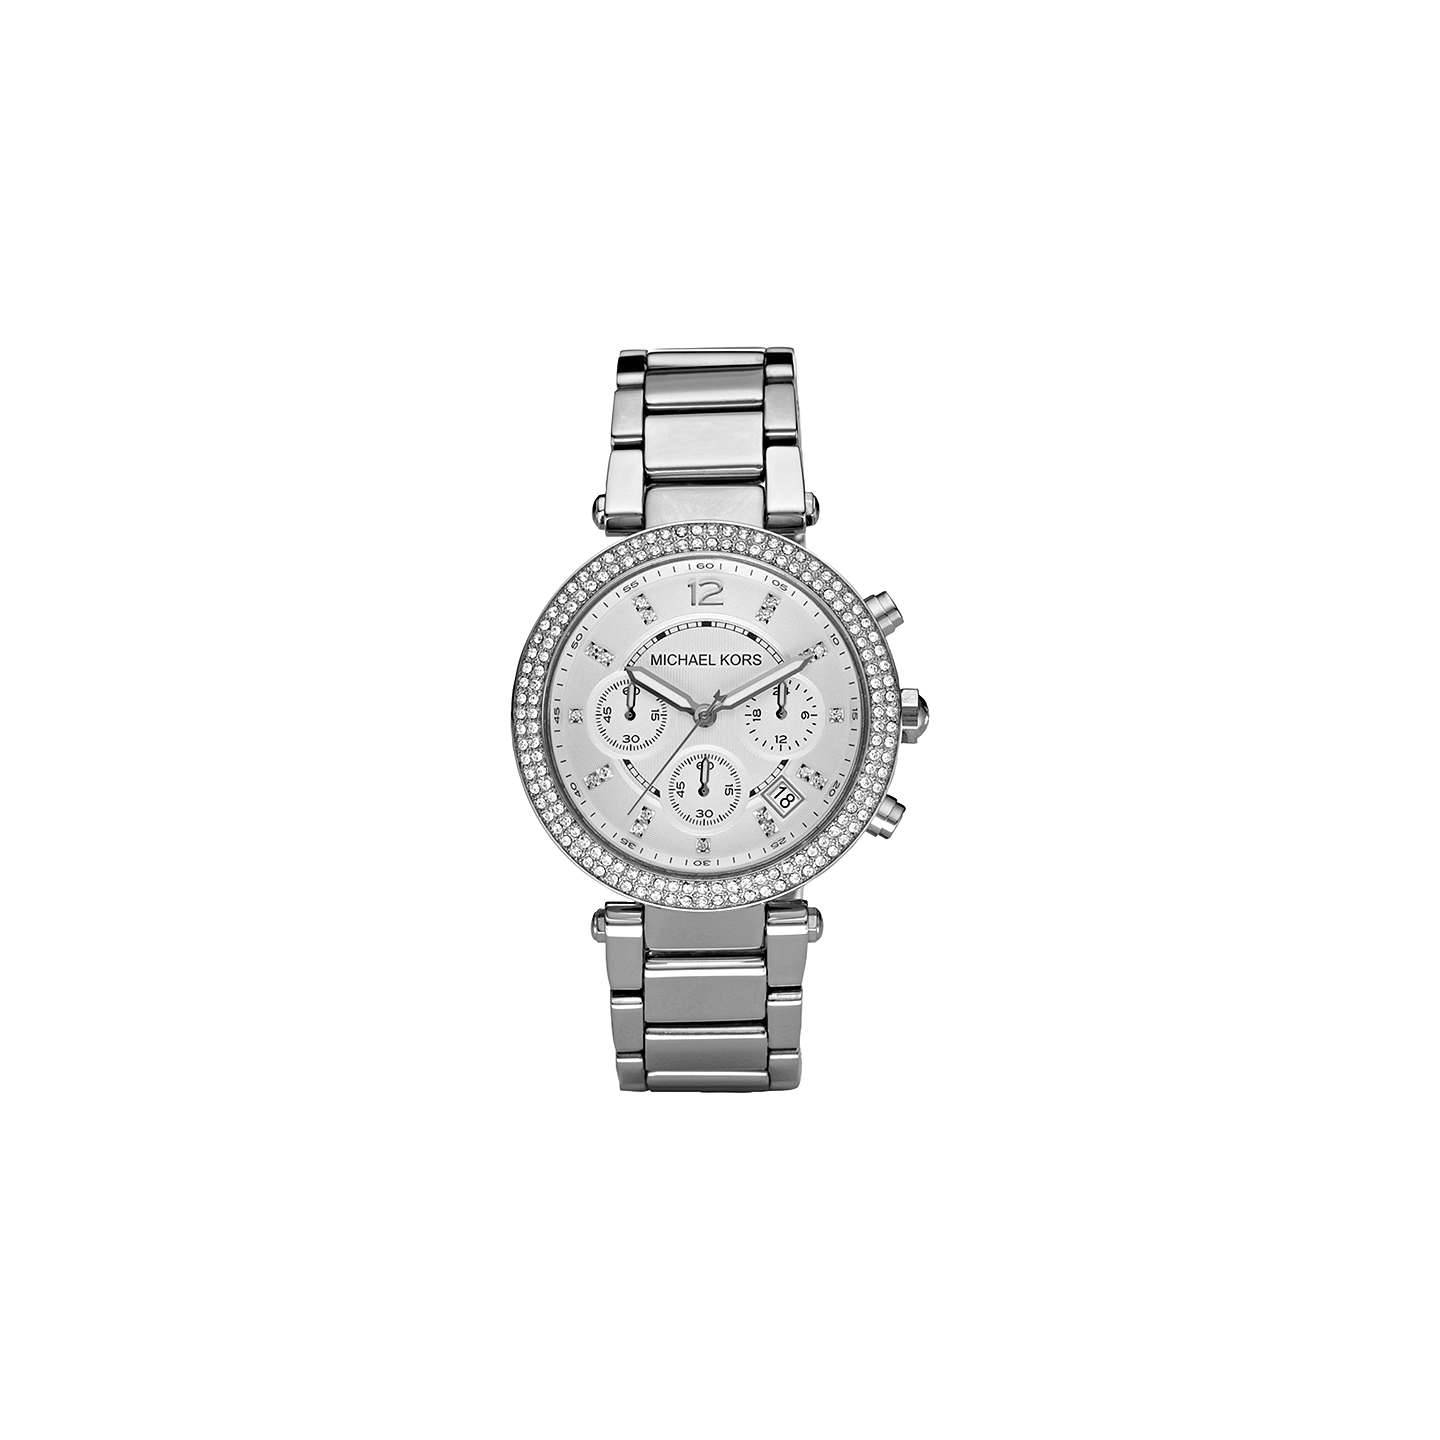 Michael Kors Mk5353 Women's Parker Chronograph Stainless Steel Bracelet Strap Watch, Silver by Michael Kors